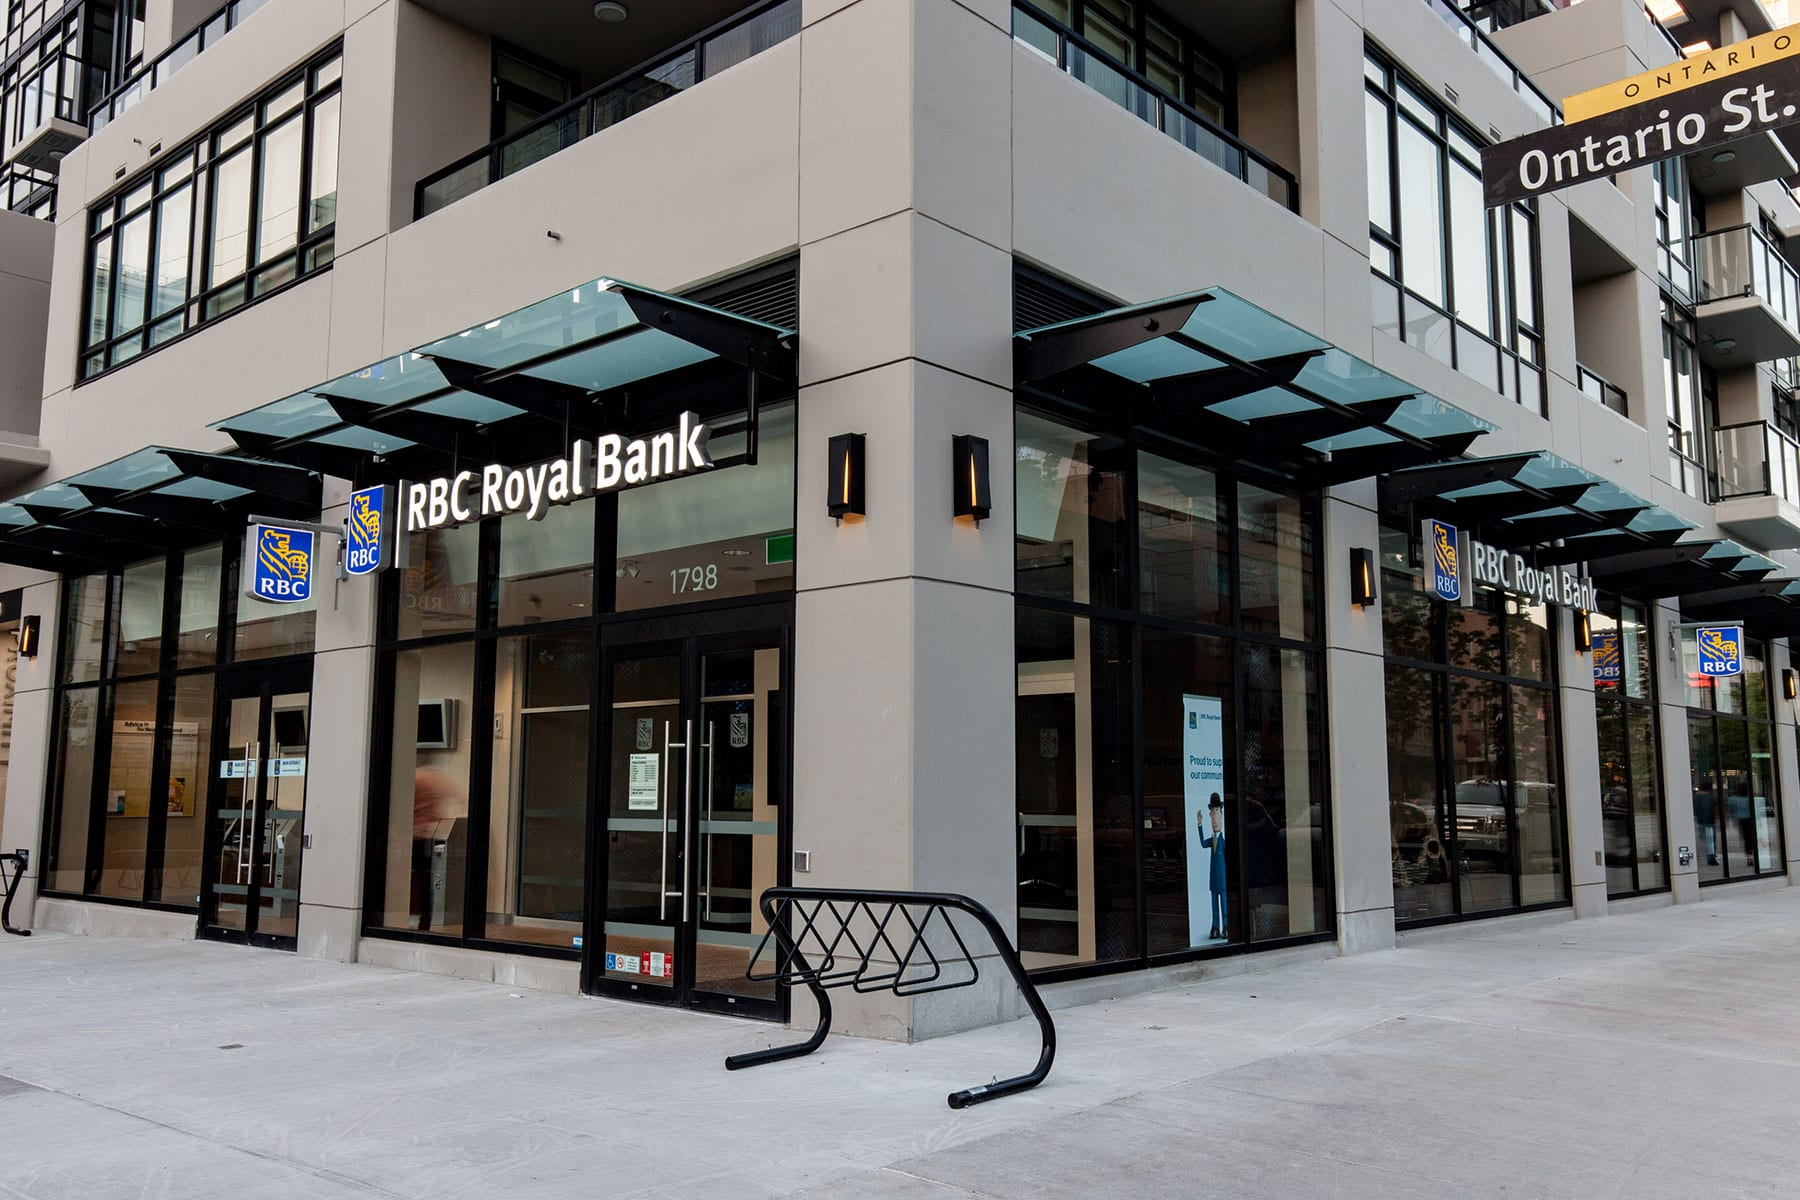 RBC Royal Bank located on Ontario St. in Vancouver